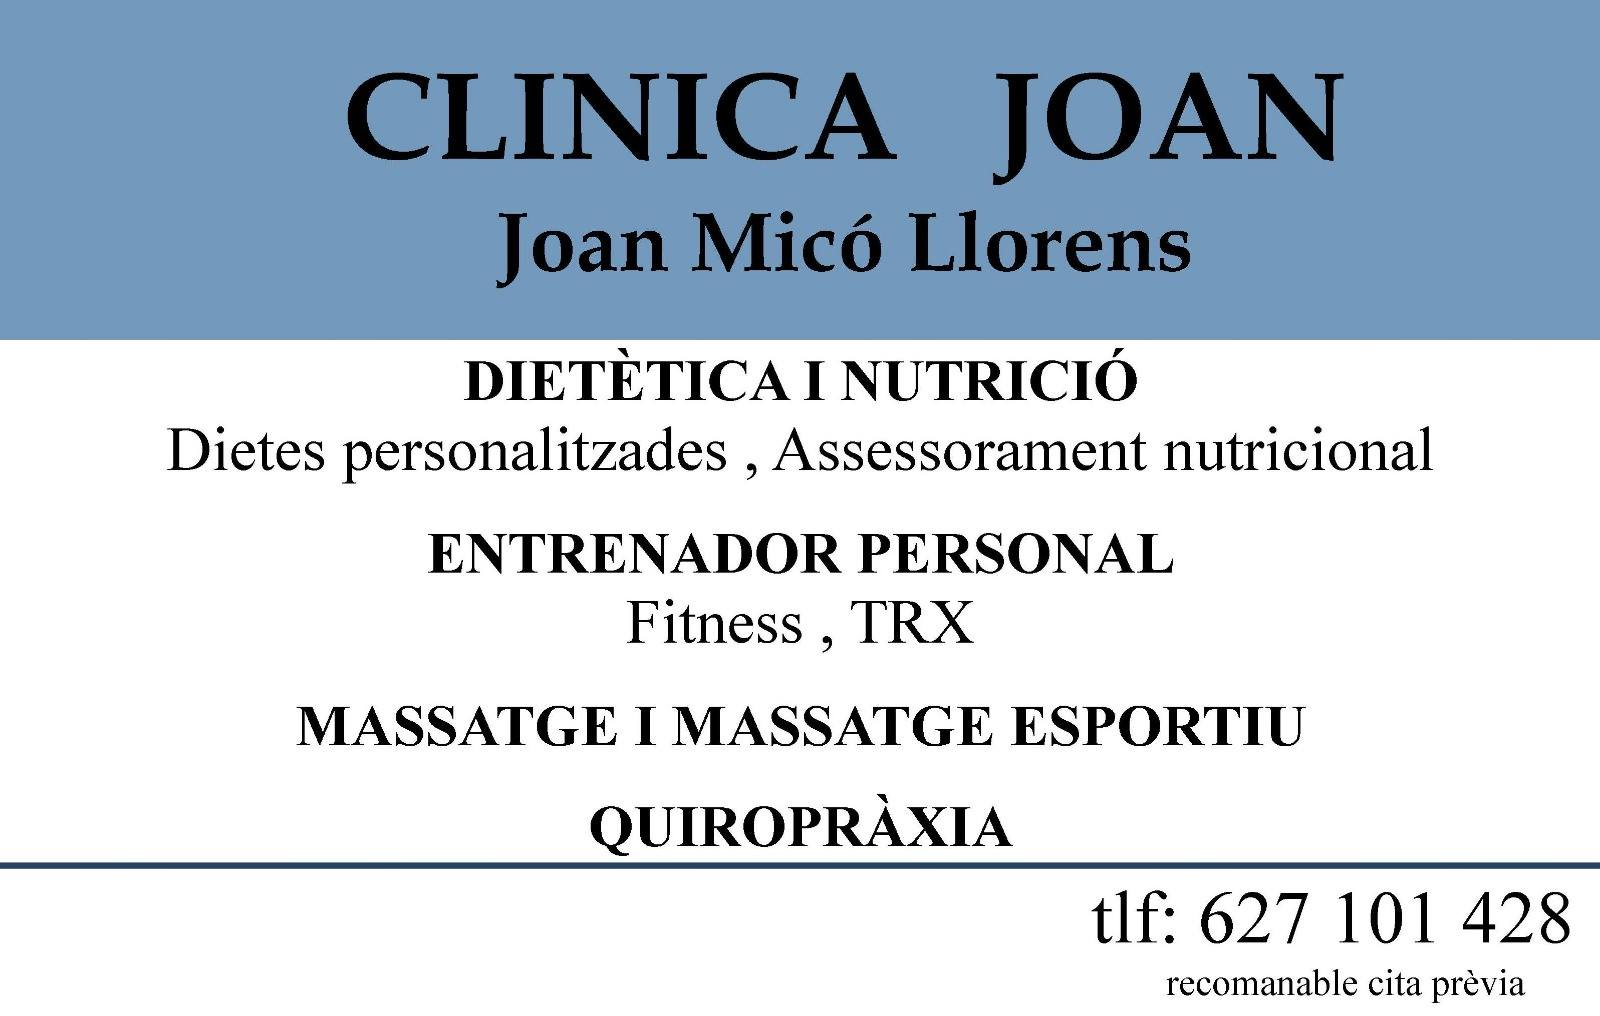 CLINICA JOAN MICO